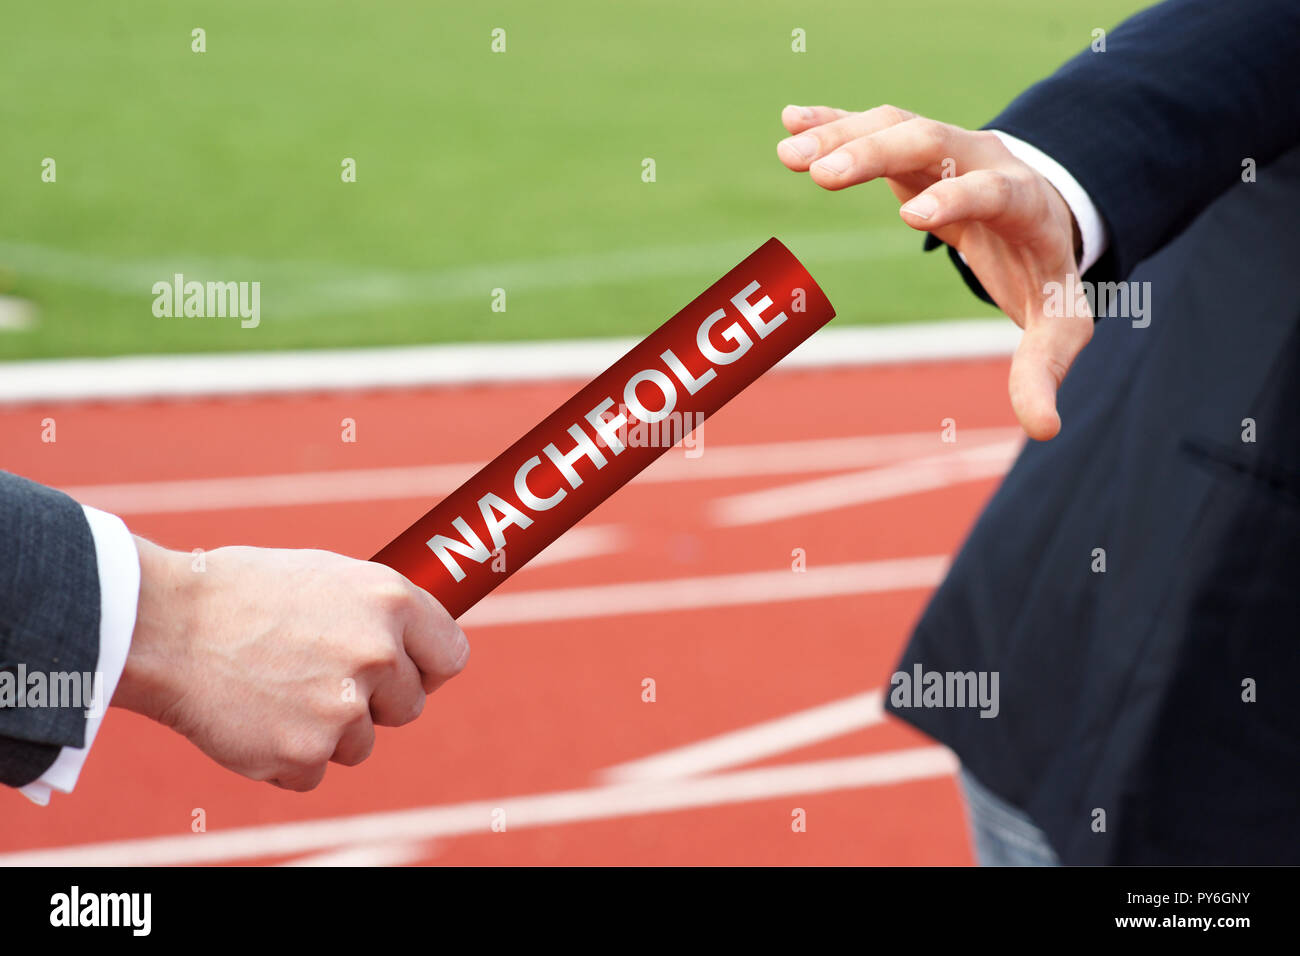 Businessmen passing red baton with german word - Nachfolge - Stock Image